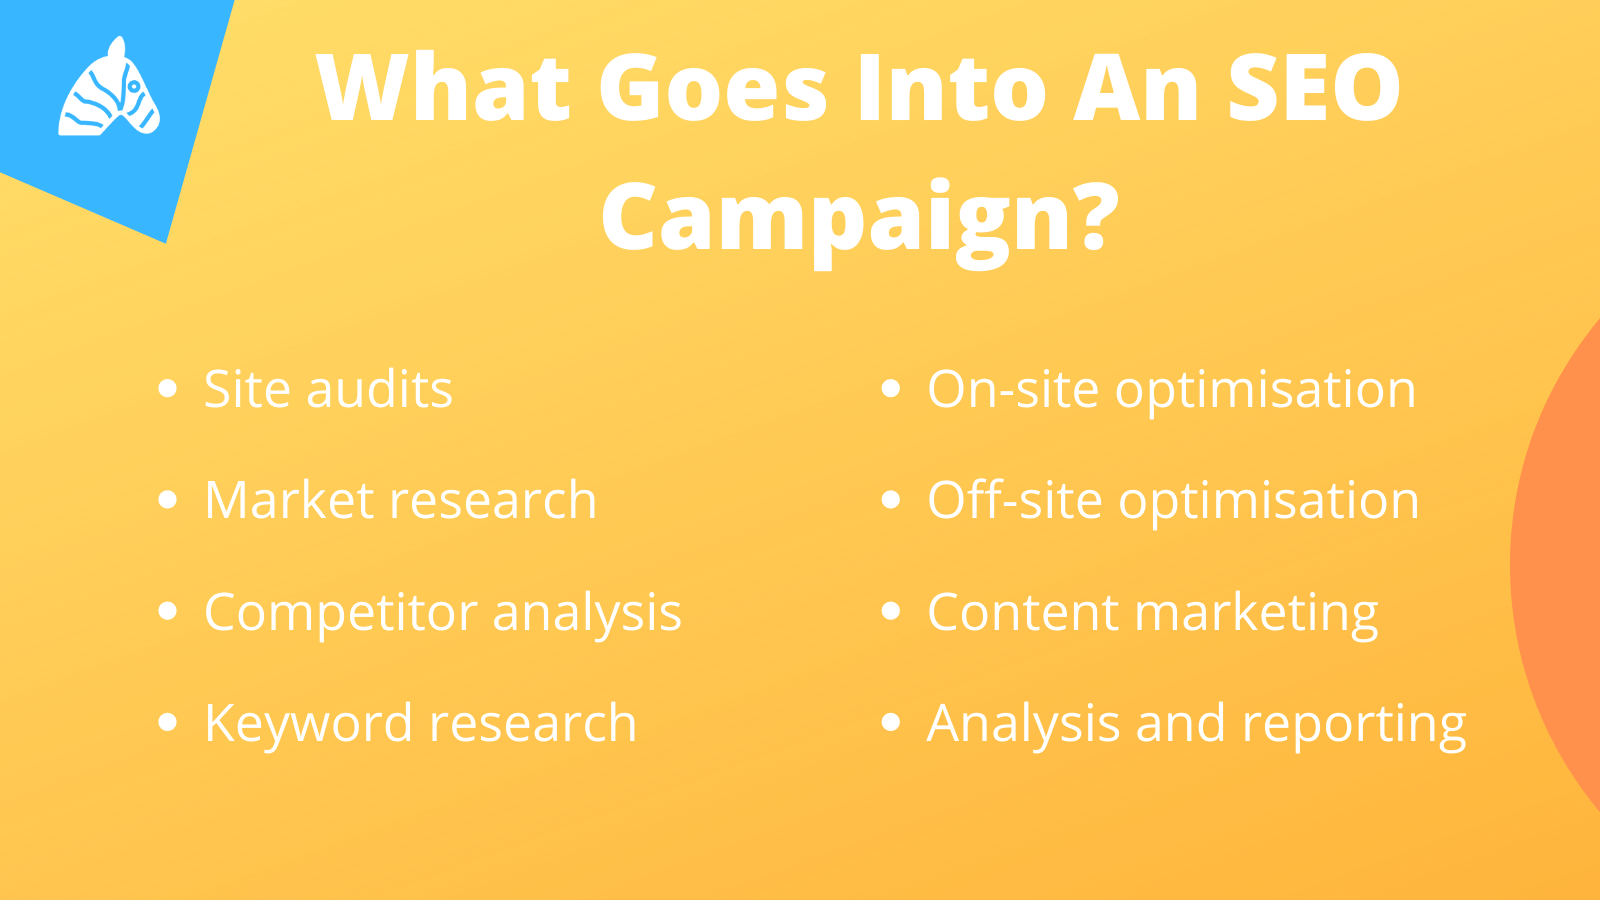 what is involved in an SEO campaign